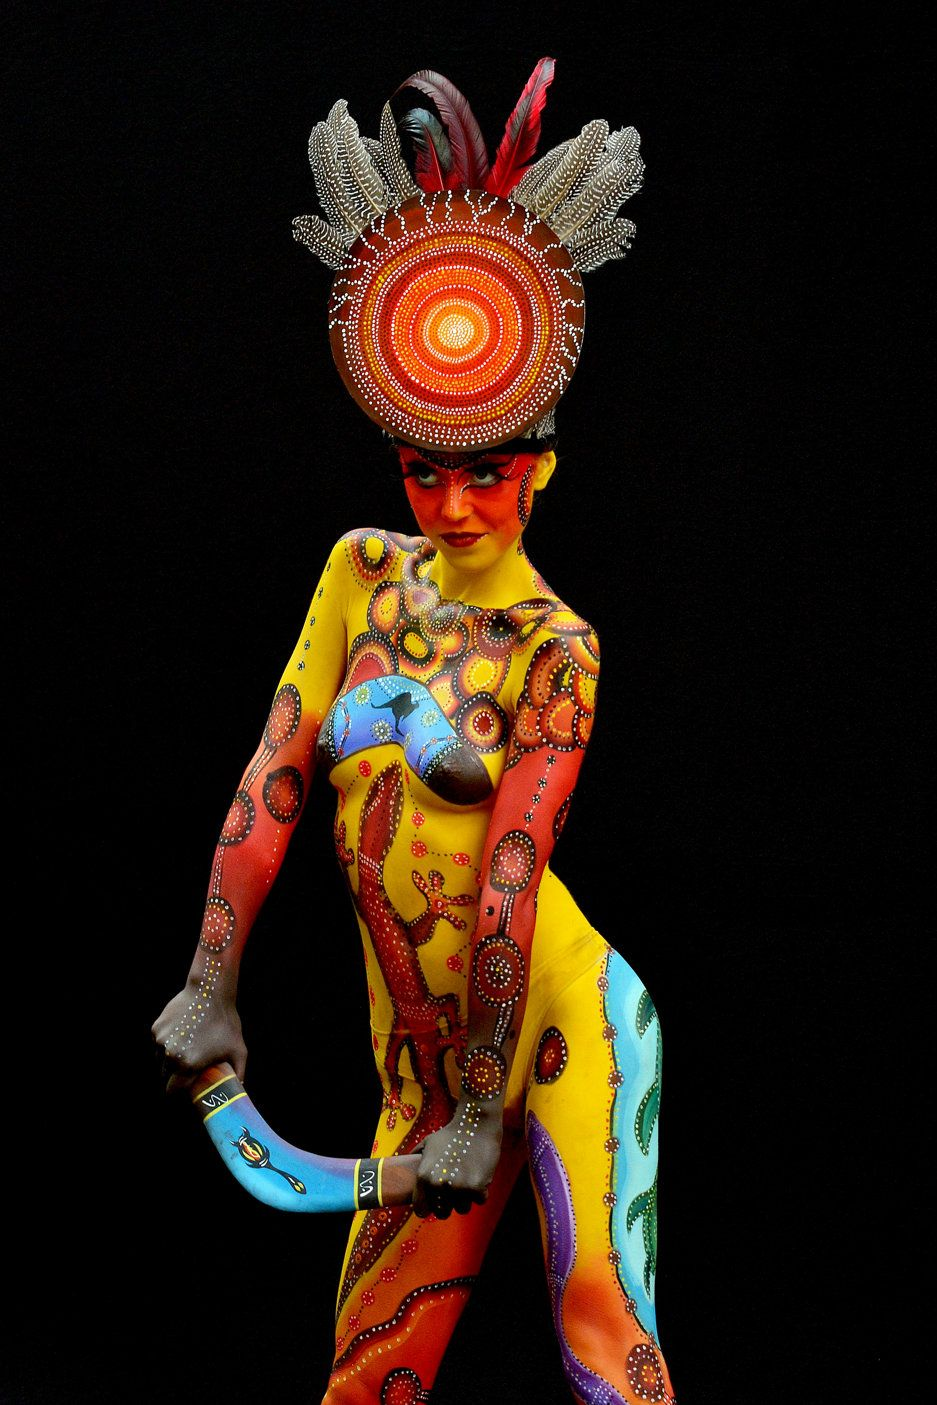 16th World Bodypainting Festival World Bodypainting Festival Body Painting Body Art Painting